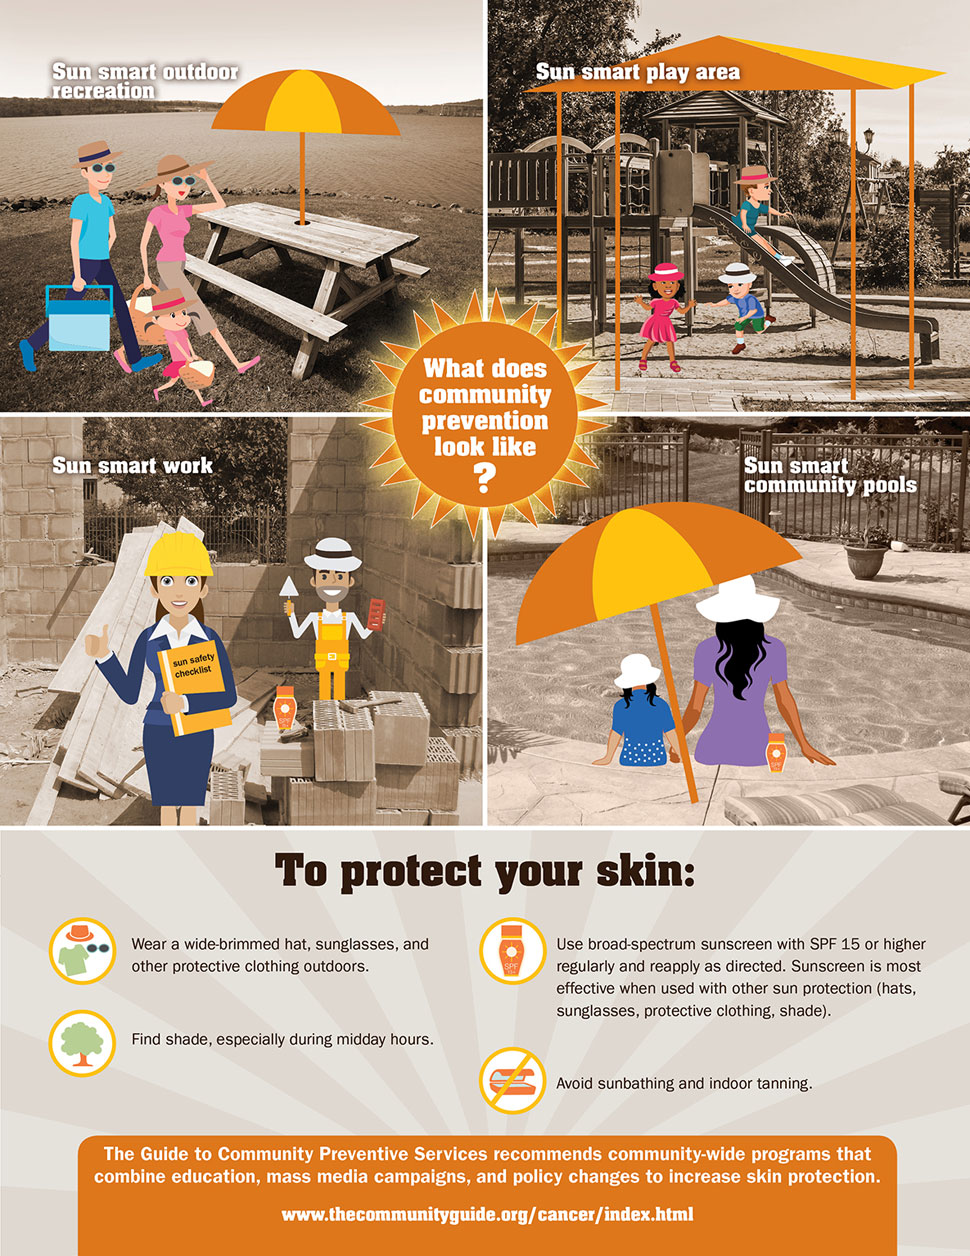 Protect your skin.